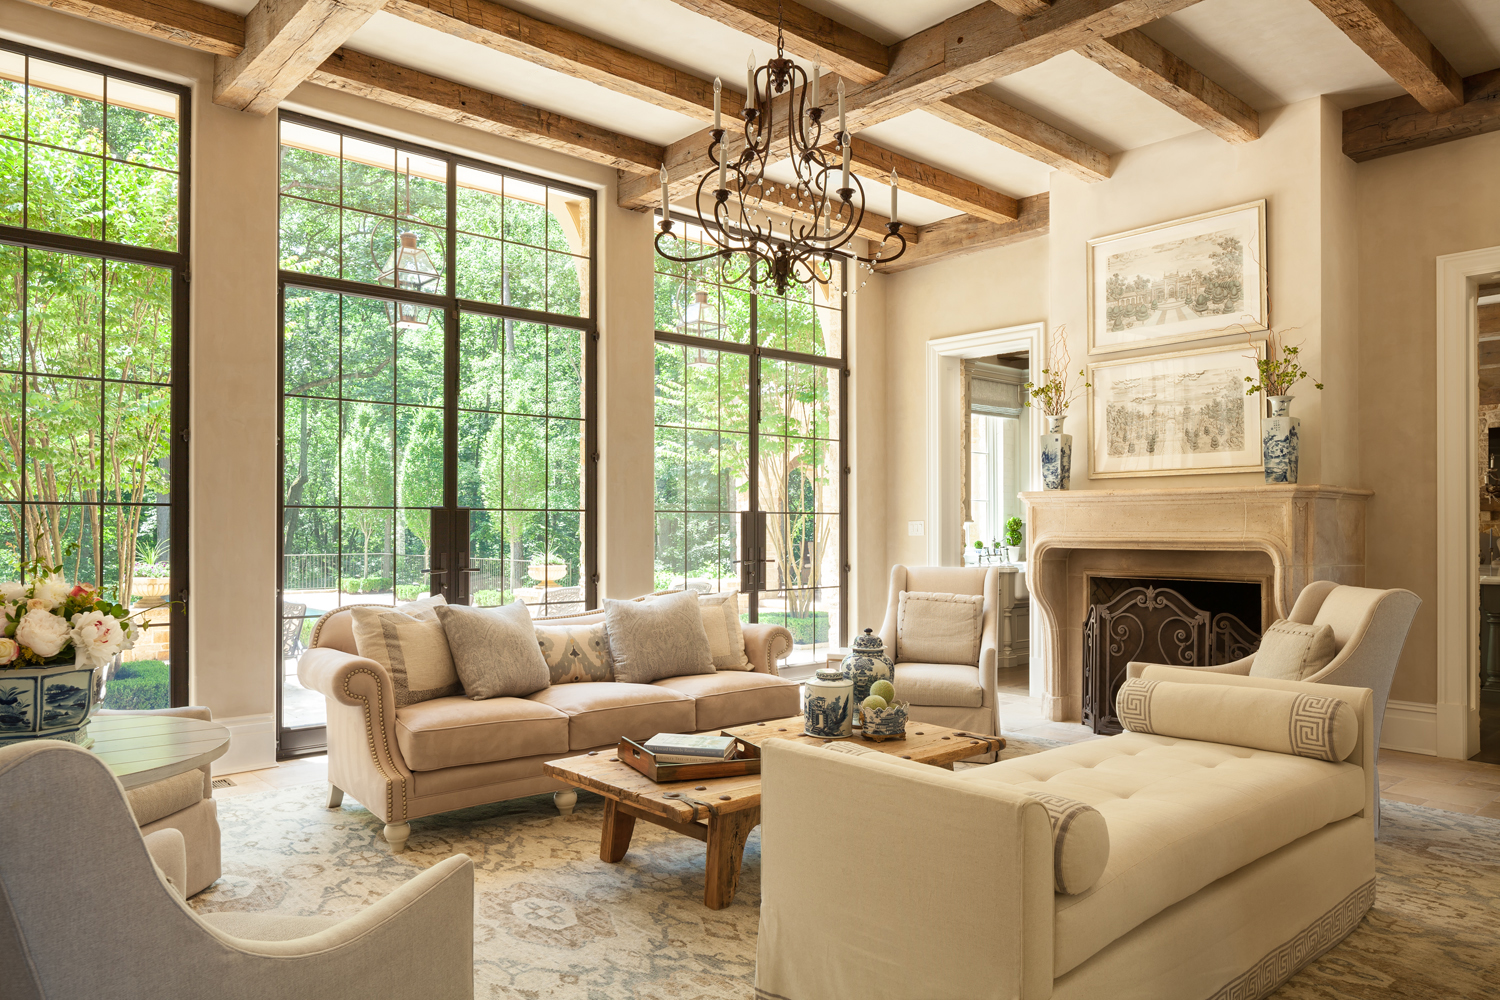 Harrison Design interior living room architecture with reclaimed heavy timber beams and steel framed glass doors to terrace